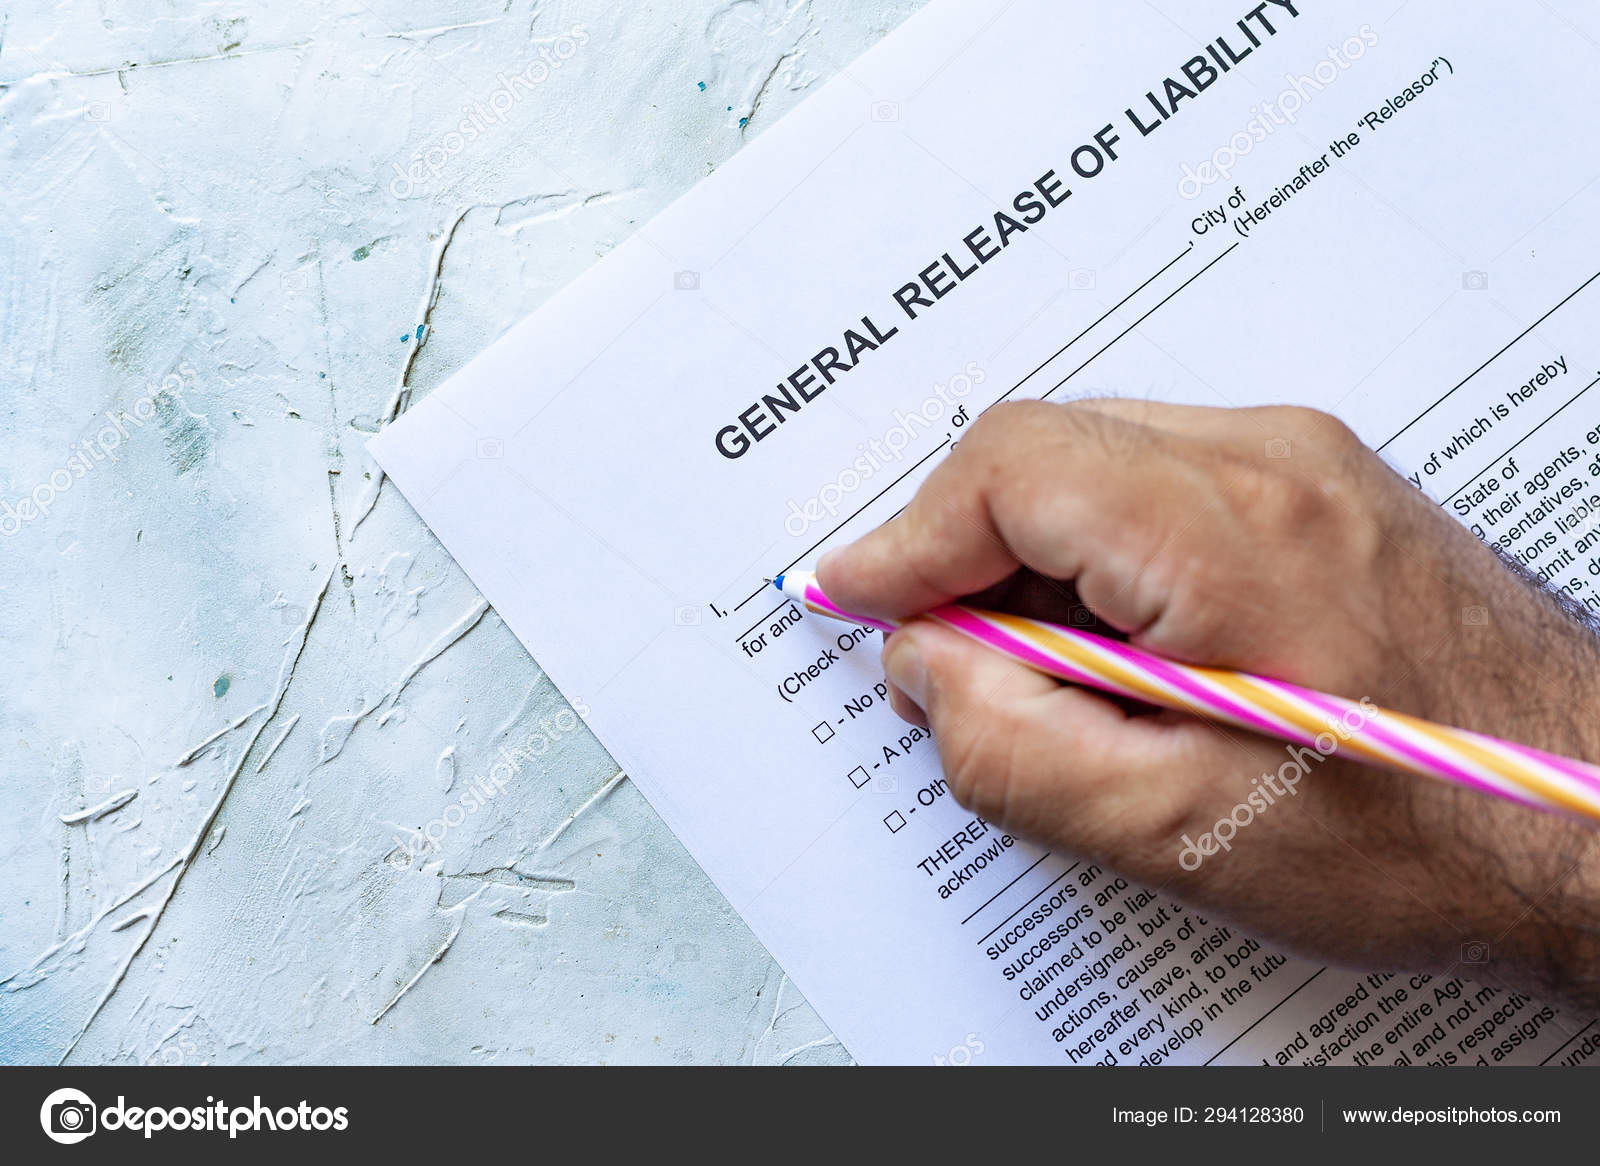 Release Of Liability Ca >> Filling General Release Of Liability Form Stock Photo